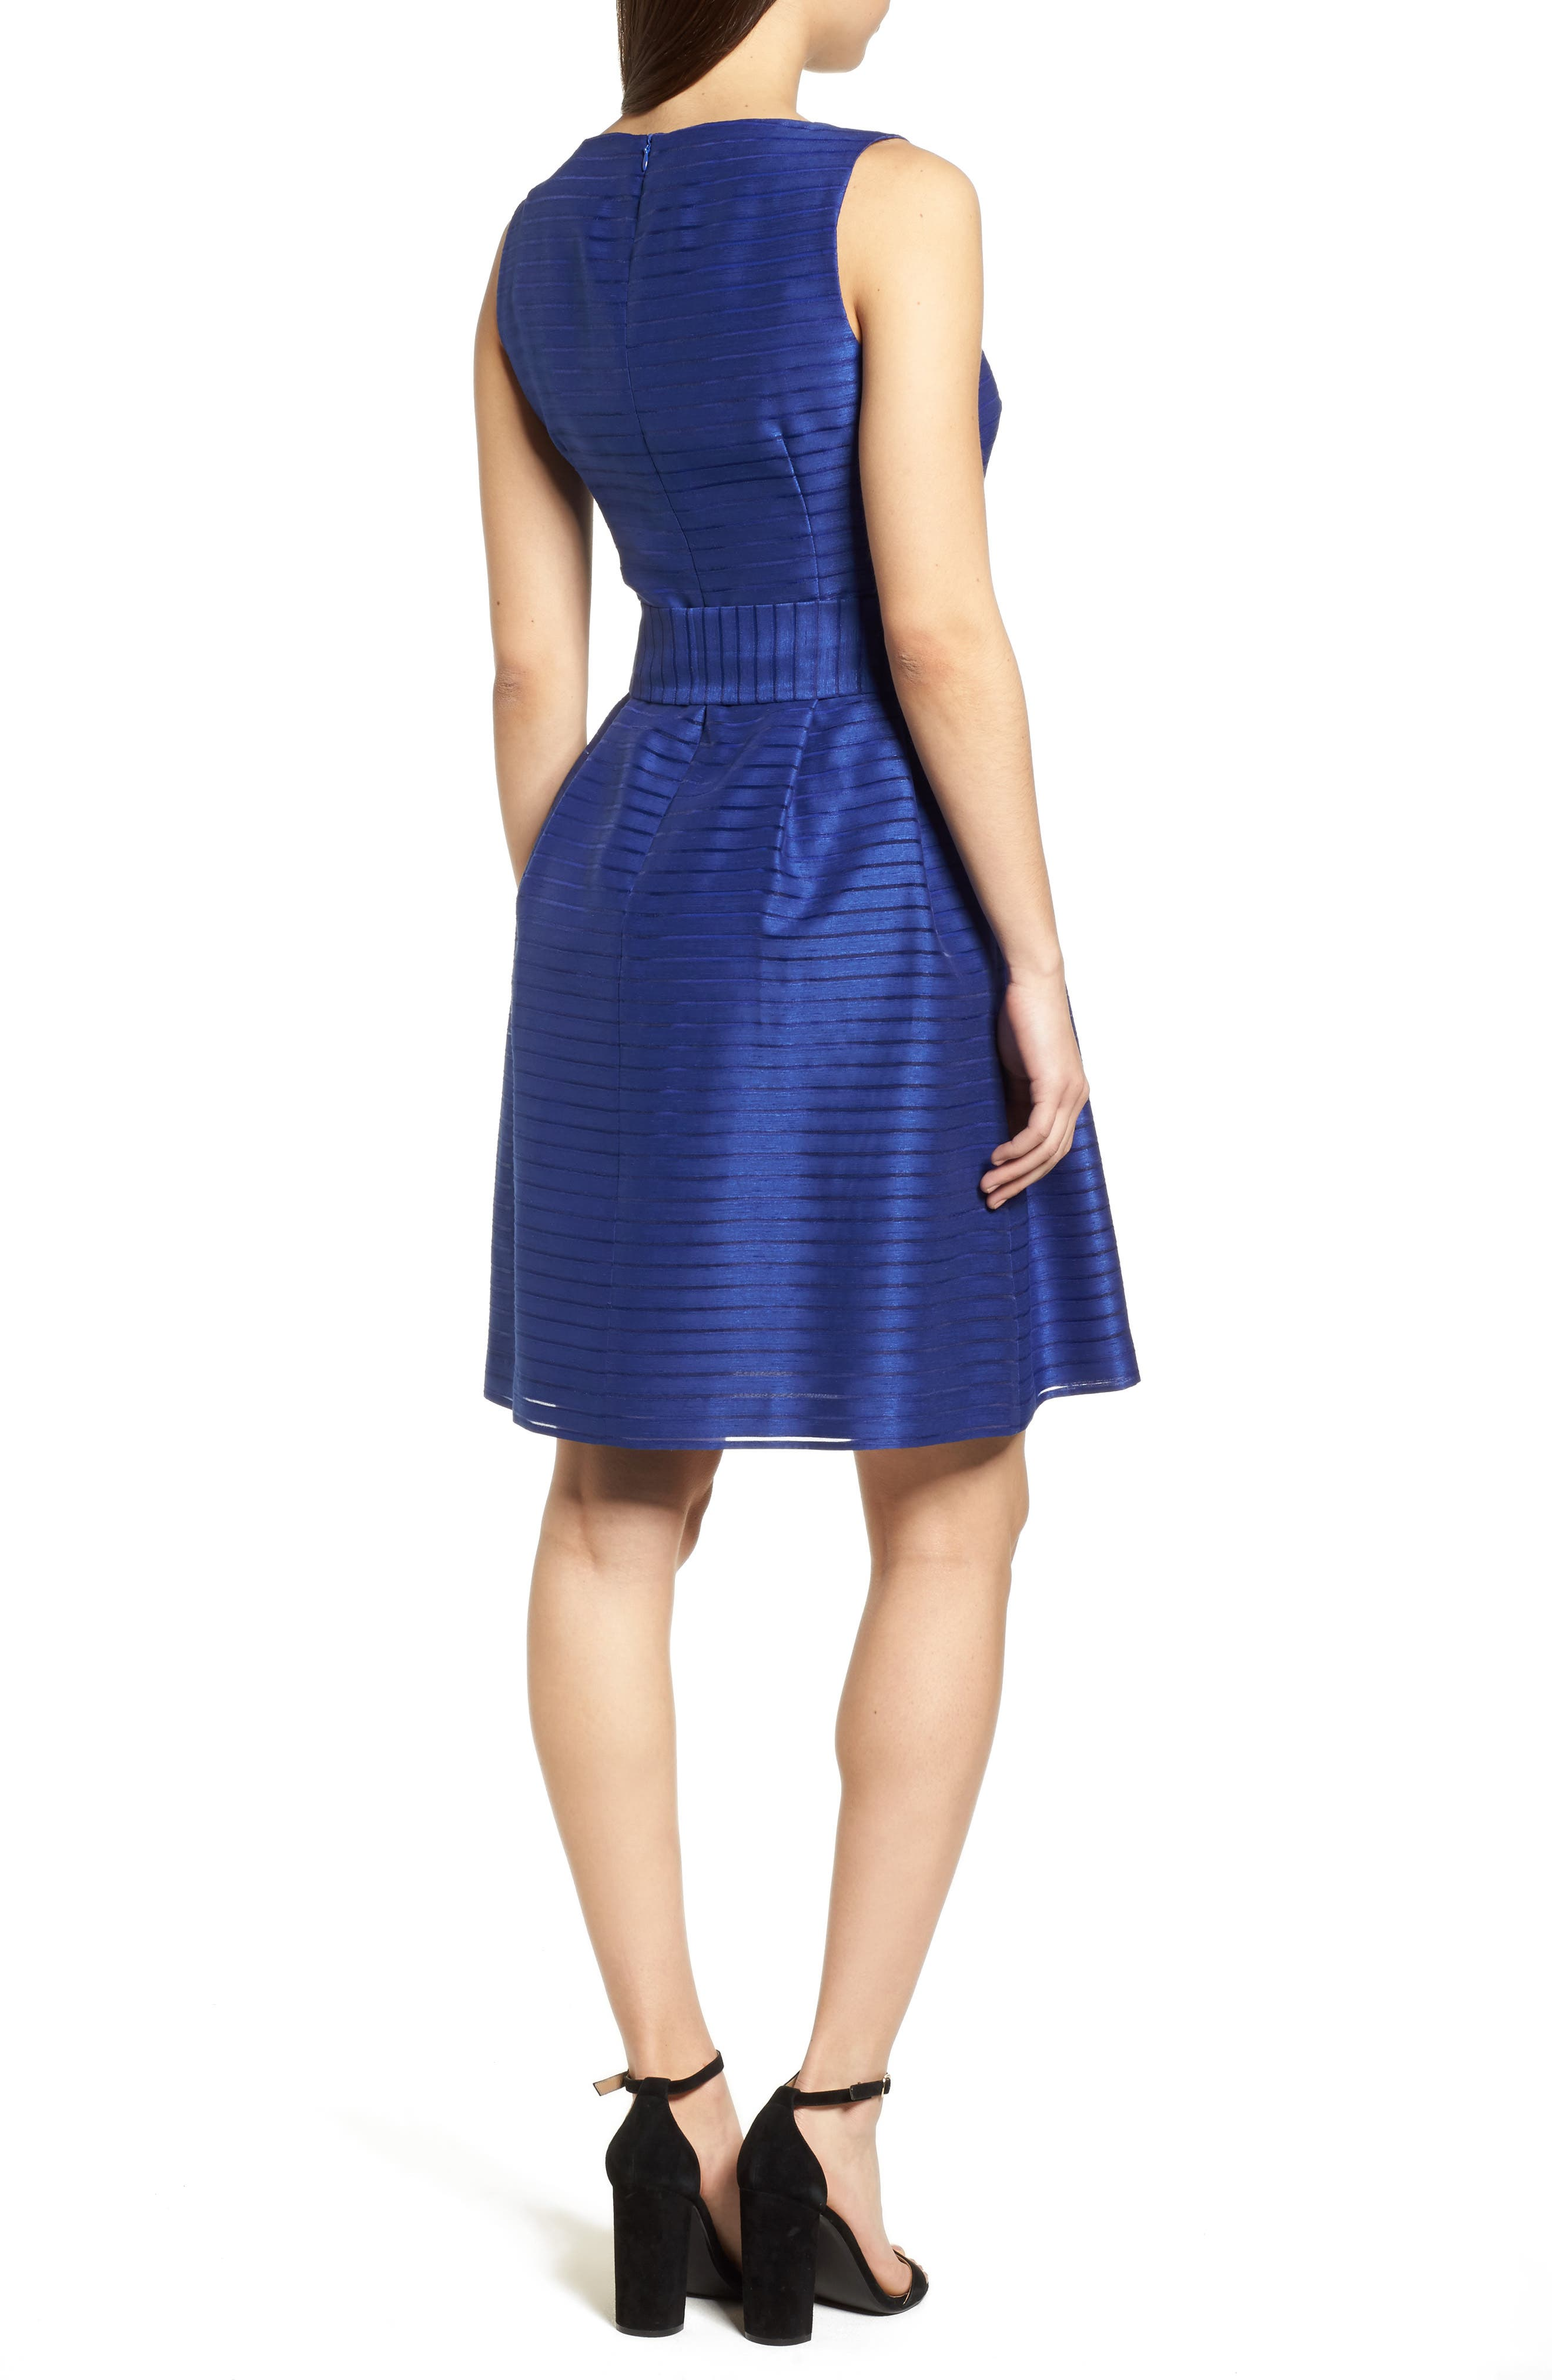 ANNE KLEIN,                             Shadow Stripe Fit & Flare Dress,                             Alternate thumbnail 2, color,                             430